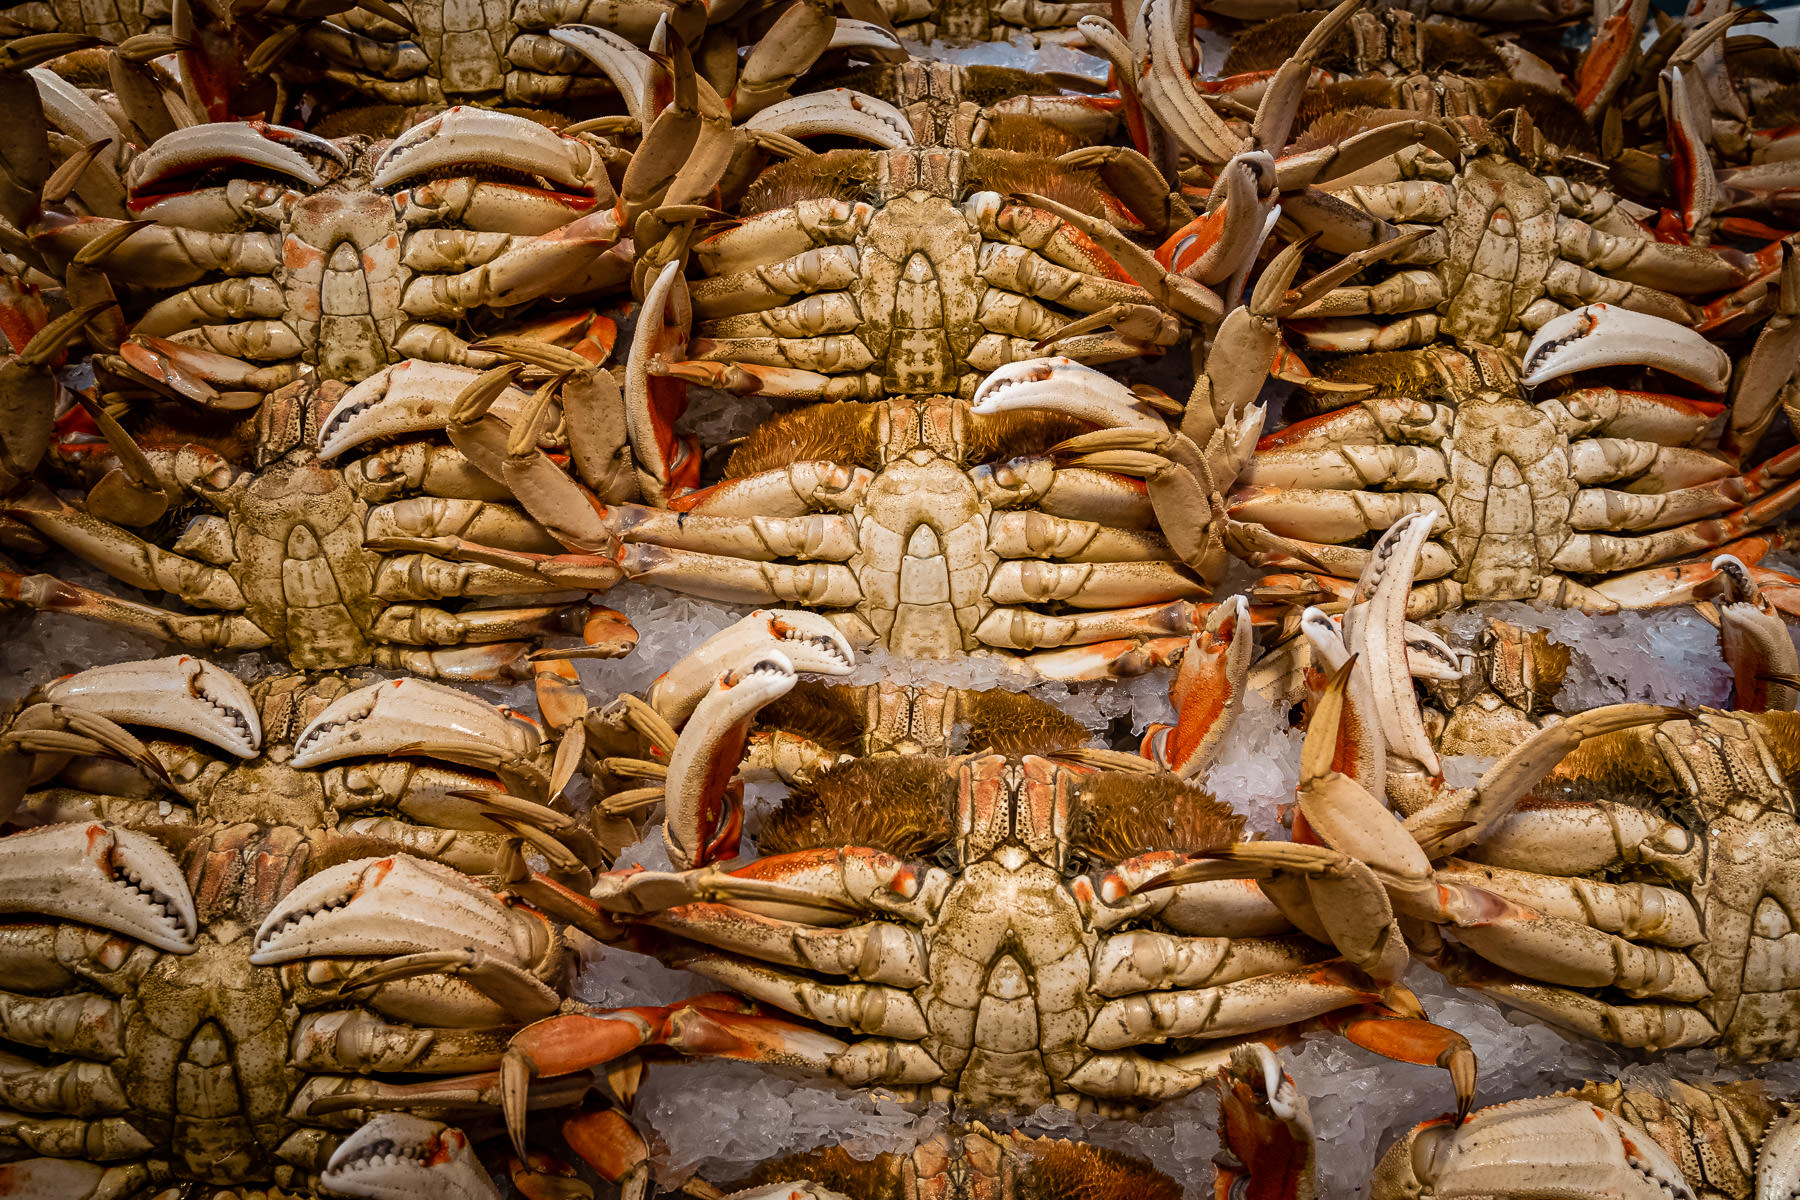 Crabs for sale at Seattle's Pike Place Market.